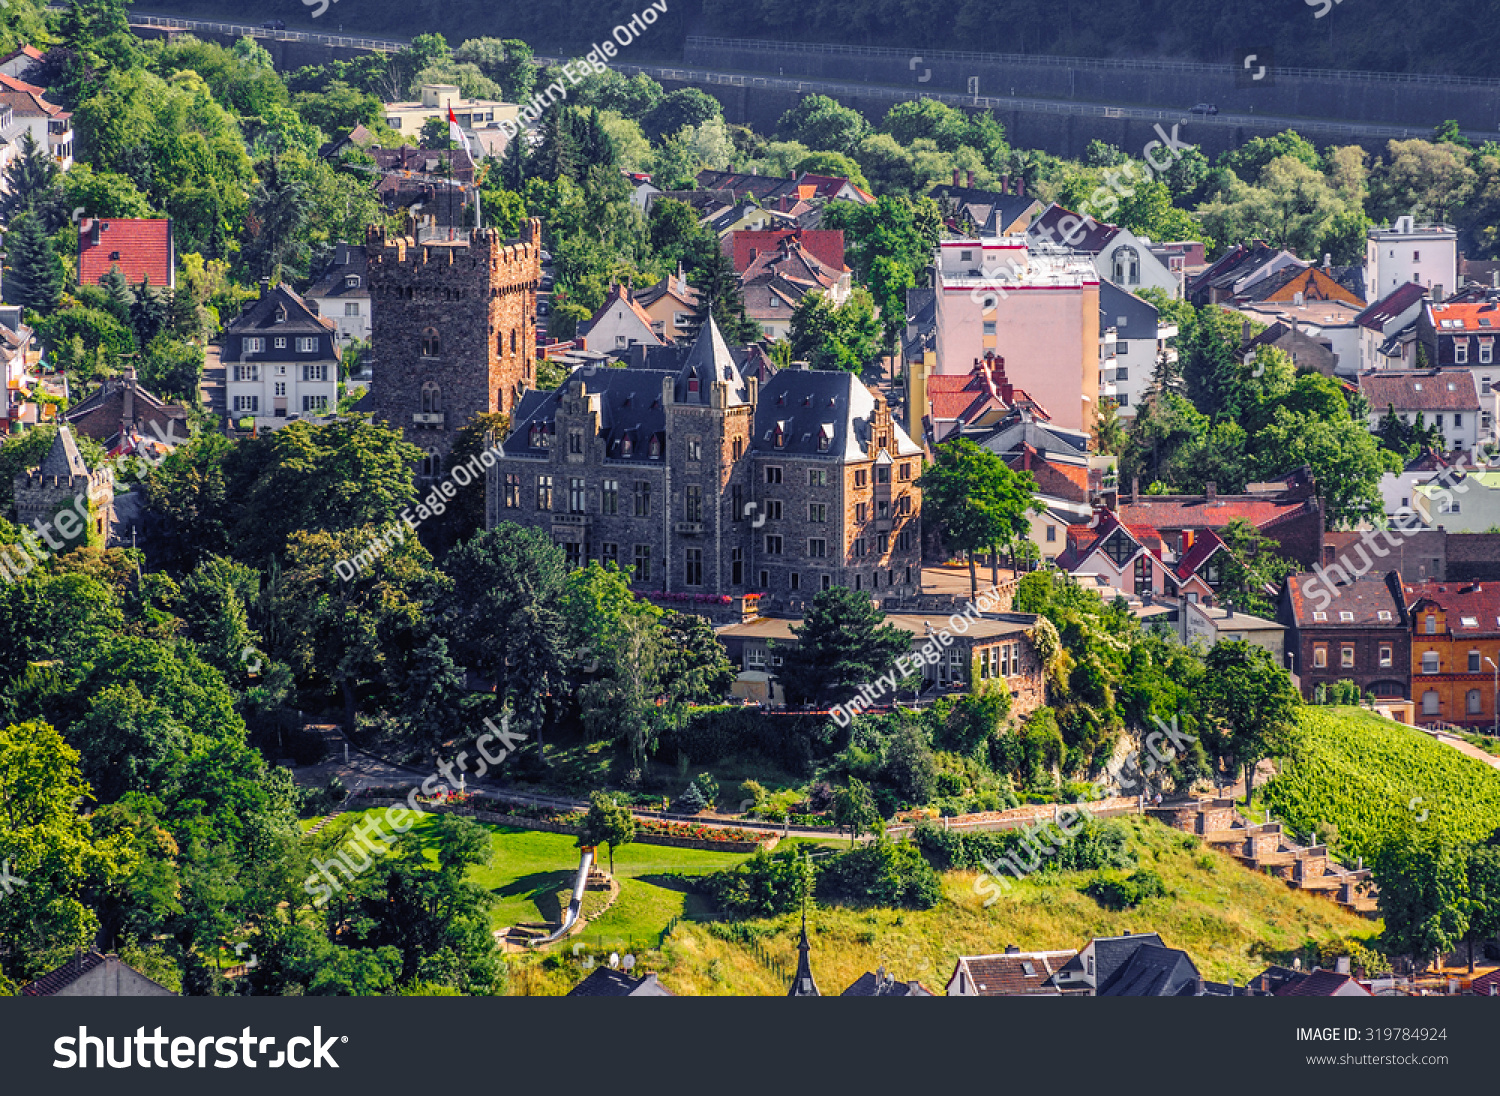 Wochenmarkt The Pfalz and Rhine Terrace, Klopp Castle Bingen Rhein Rheinlandpfalz Germany Stock Photo ...